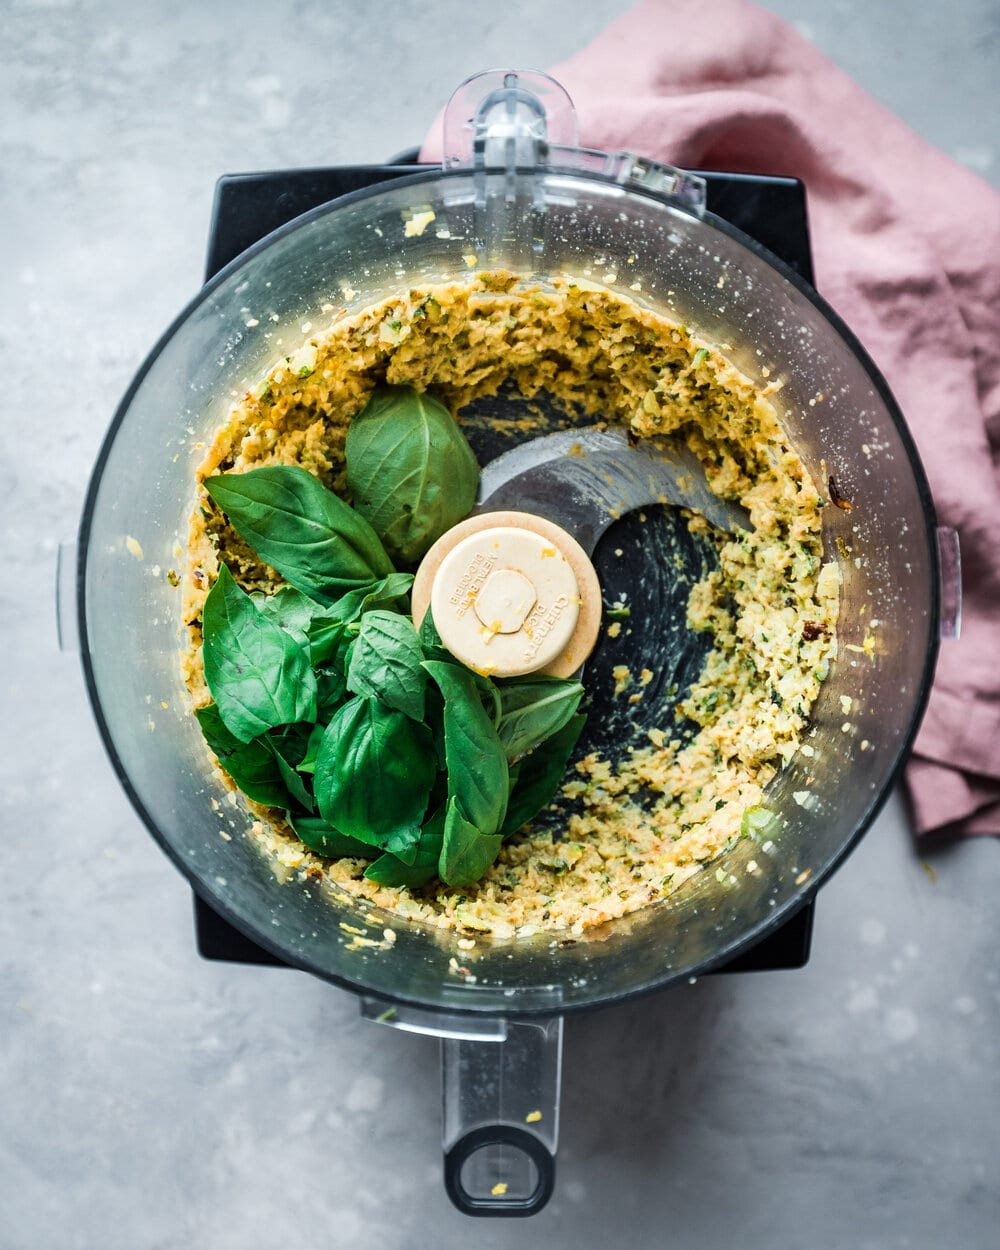 Spinach being added to pine nuts in food processor